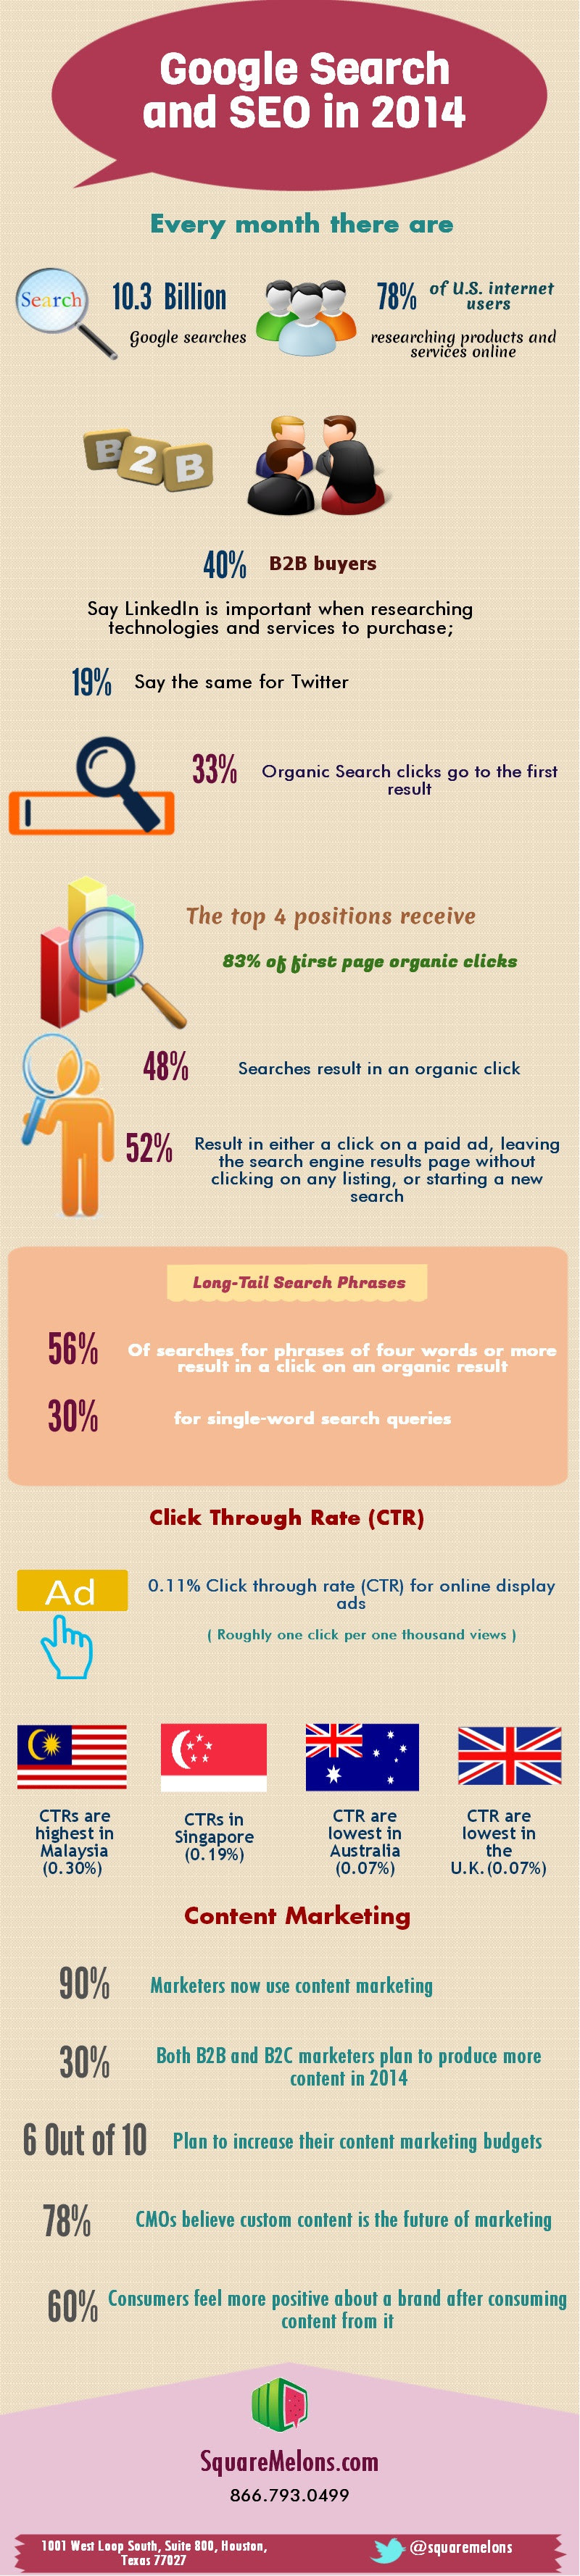 Infographic: Google Search and SEO in 2014